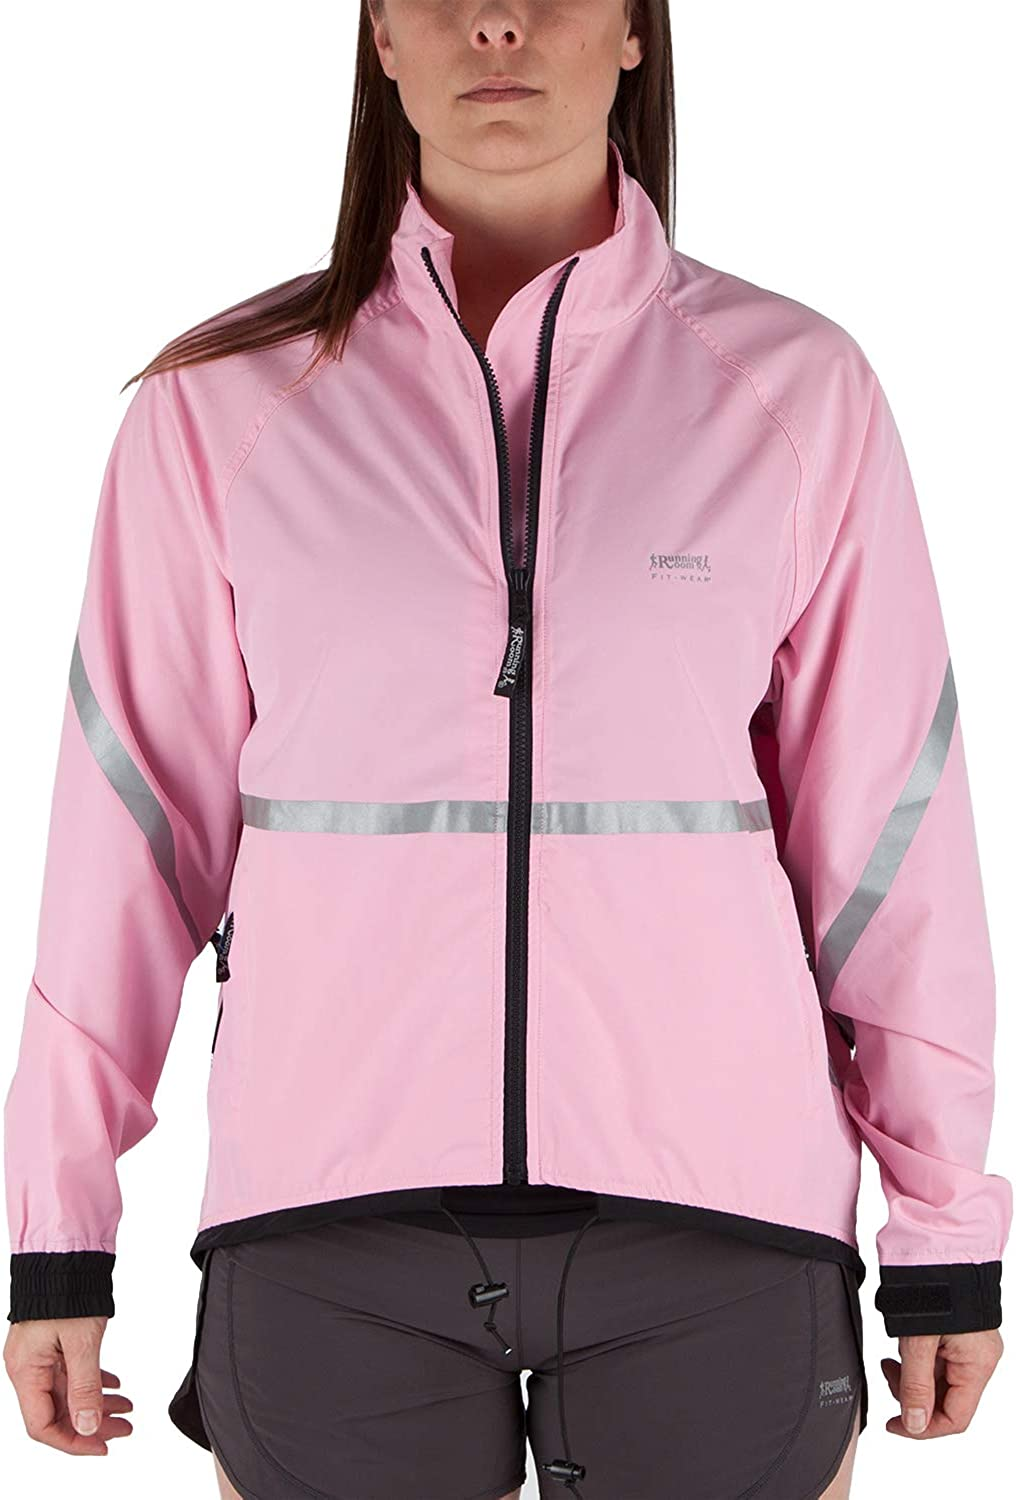 Running Room Unisex Reflective Jacket with Pockets (XL, Pink)